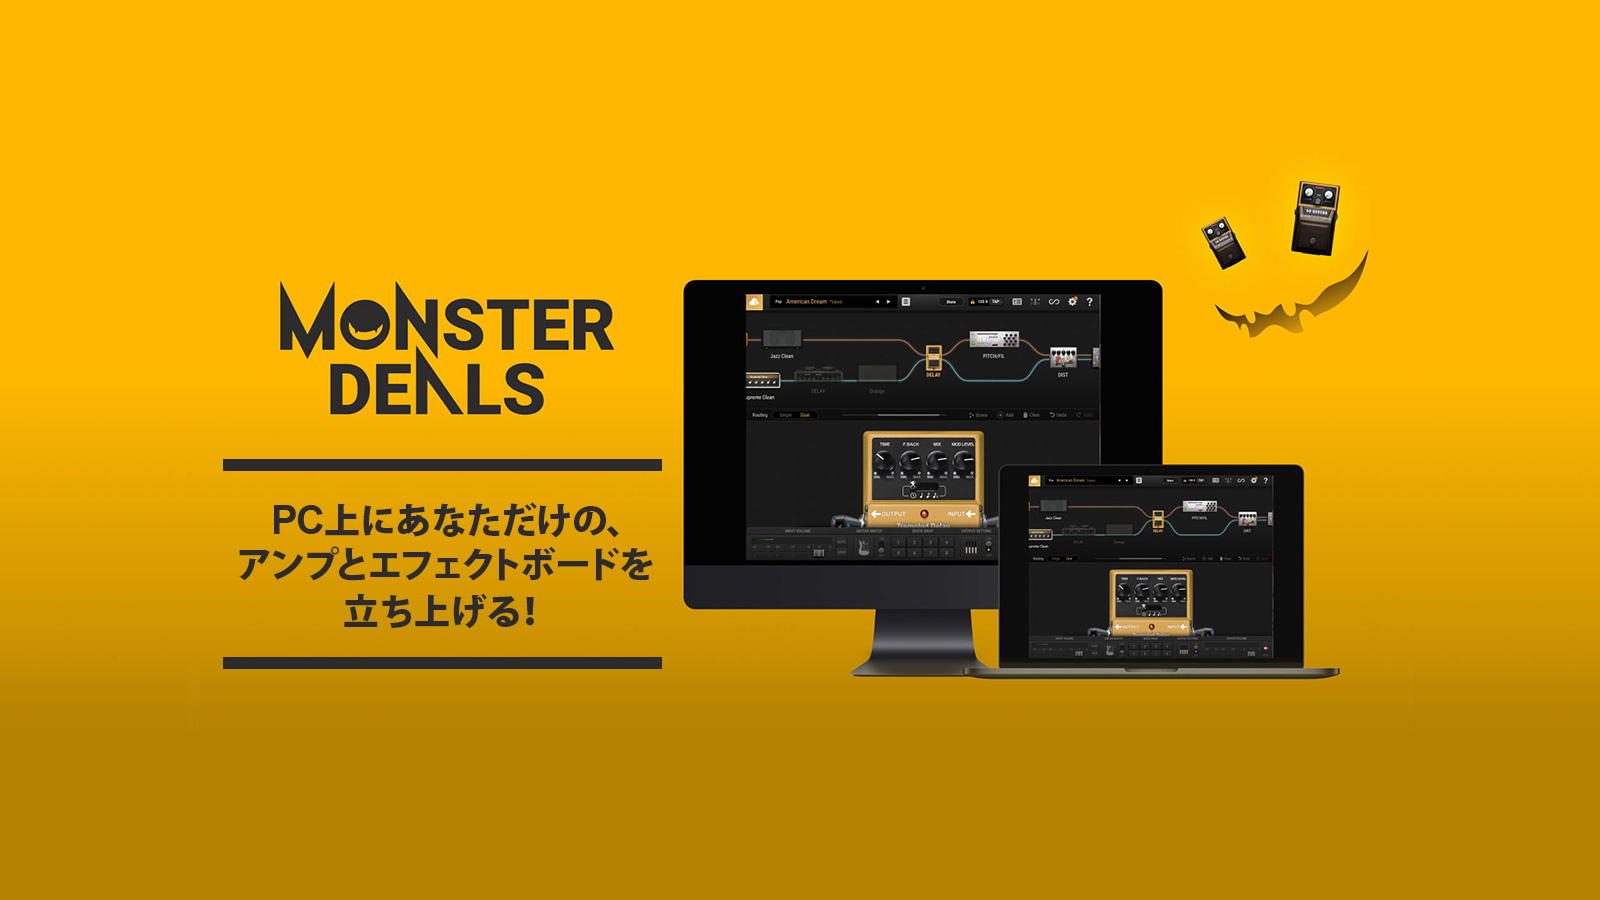 Positive Grid MONSTER DEALS